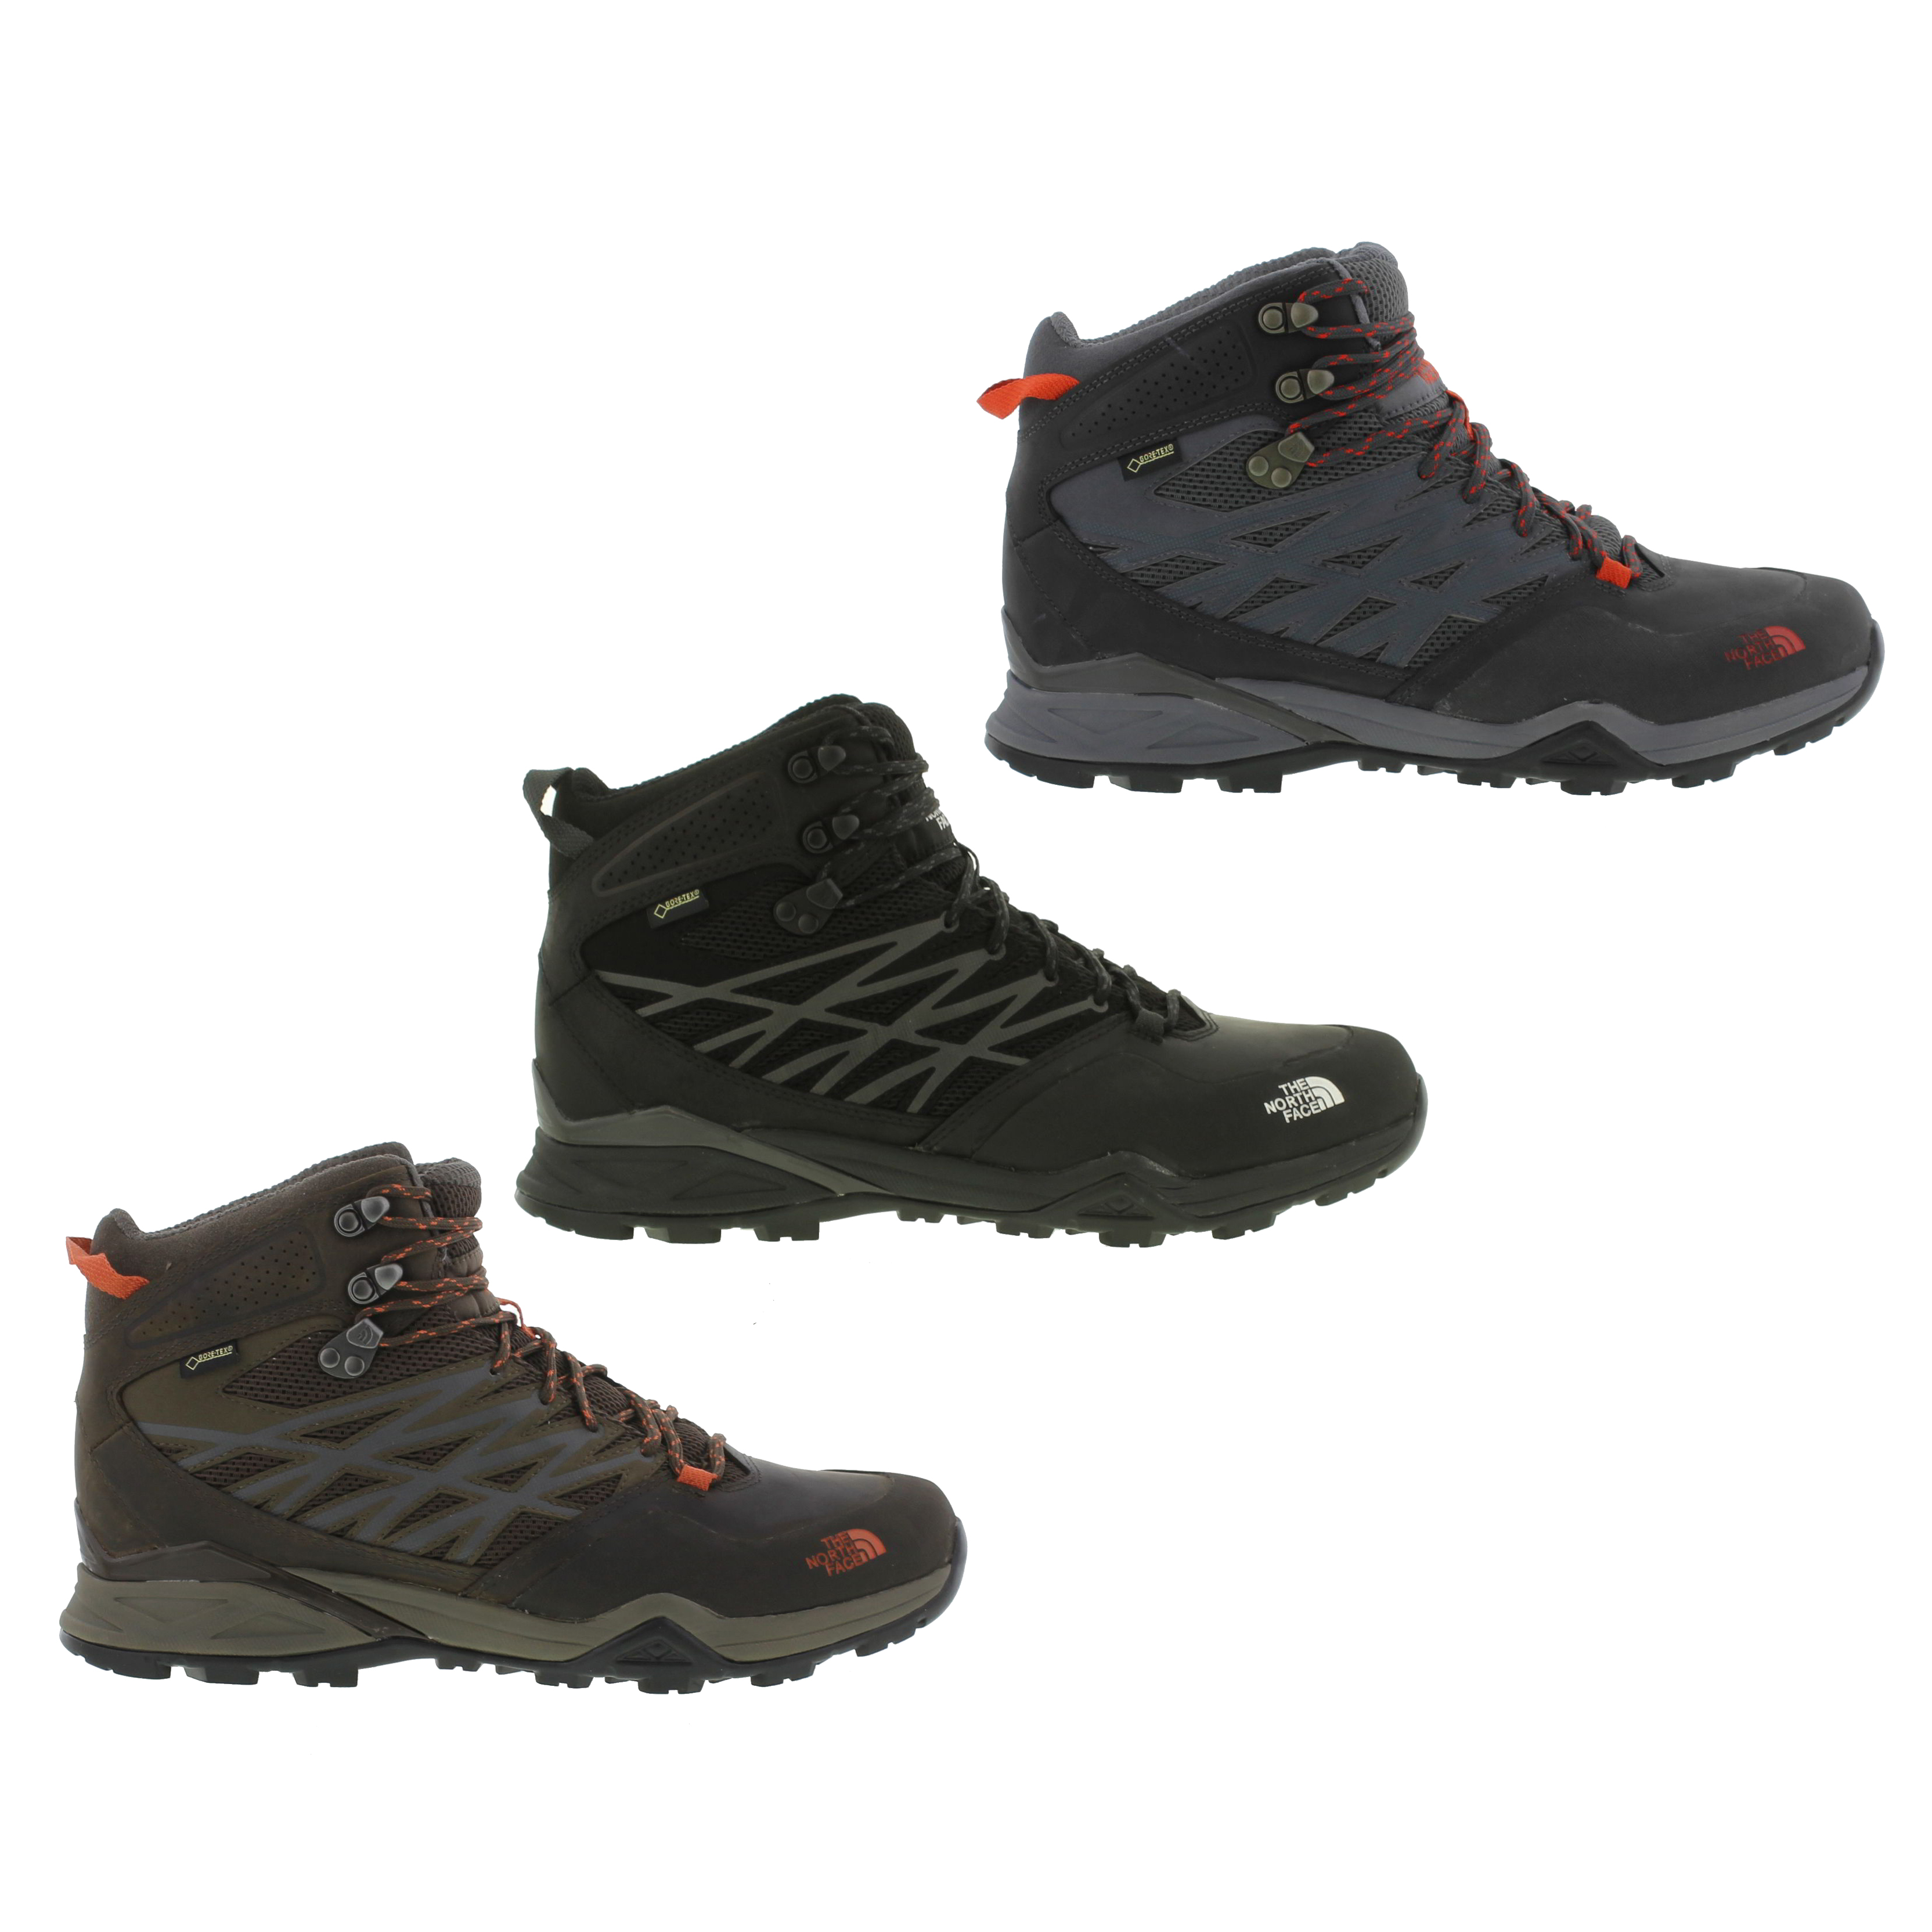 774d64e8c46 Details about North Face Hedgehog Hike Mid GTX Mens Waterproof Gortex  Walking Boots Size 7-11